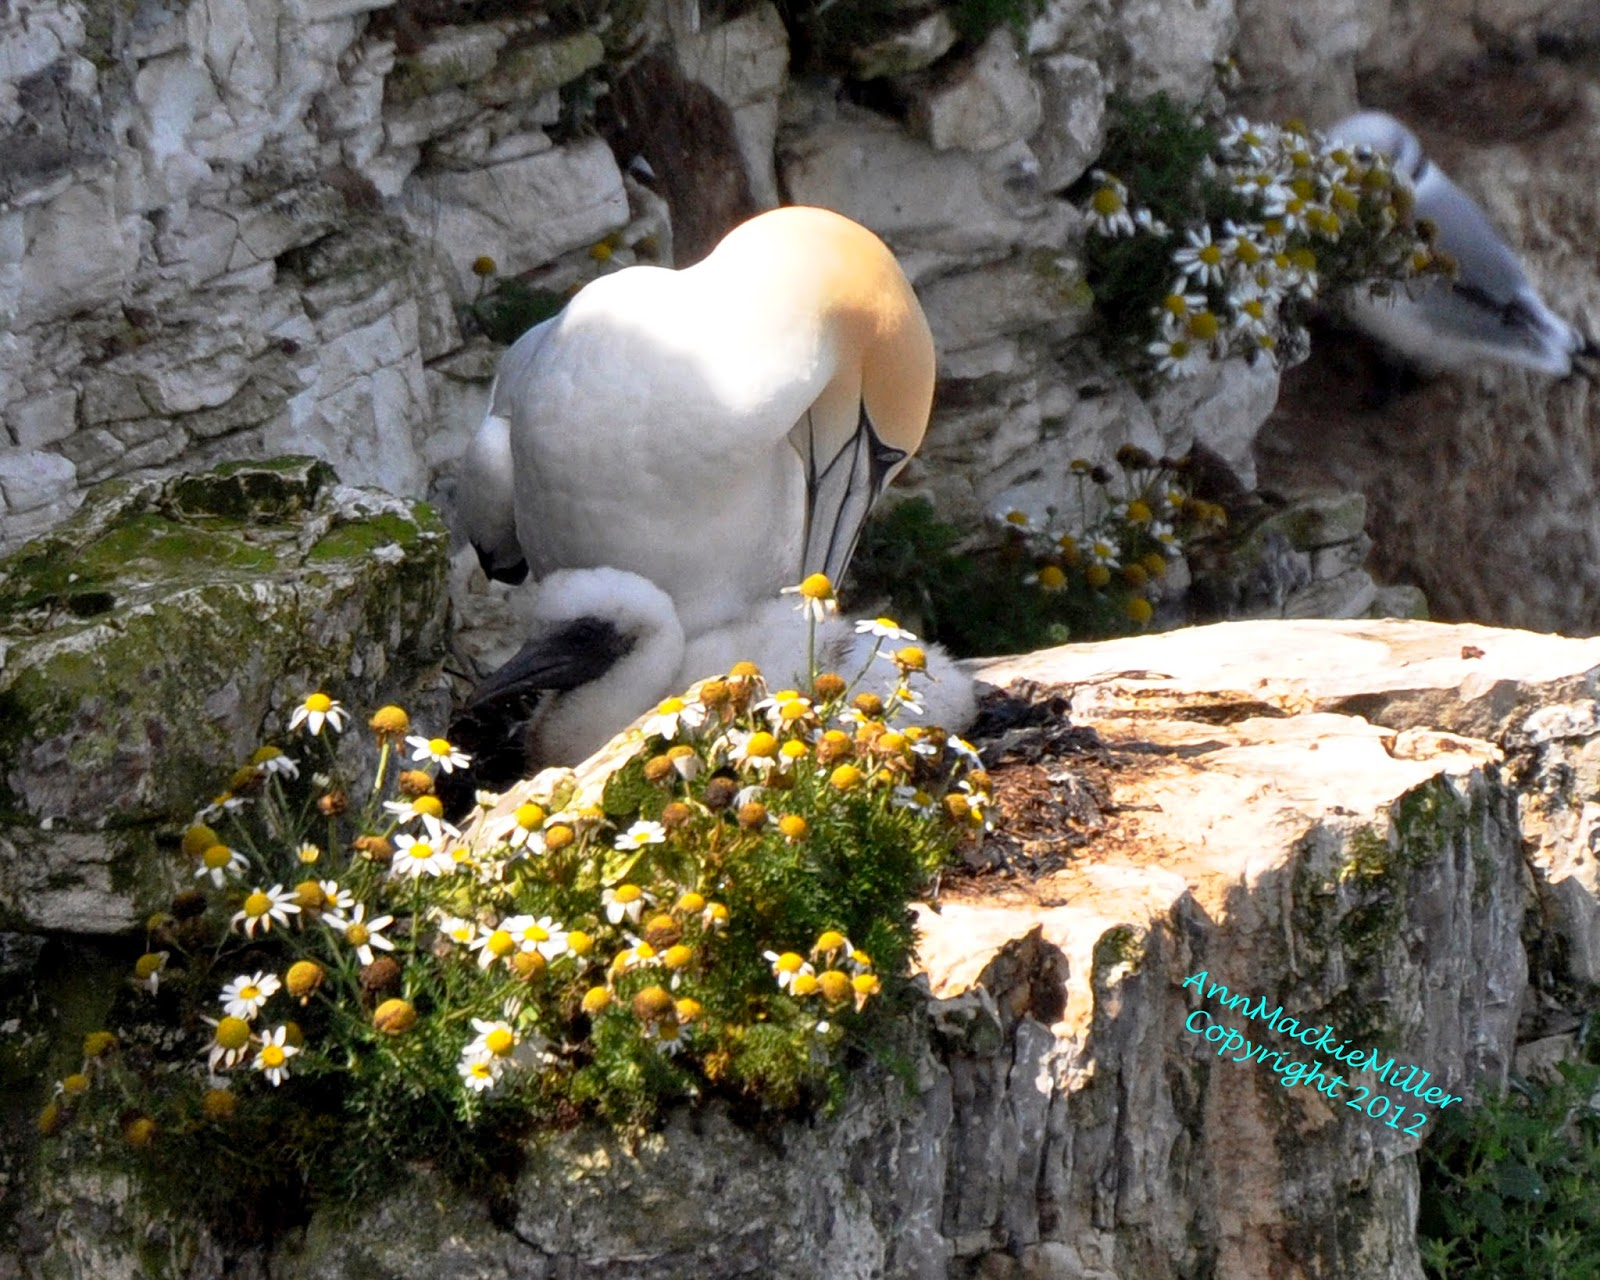 adult gannet preening with chick in nest